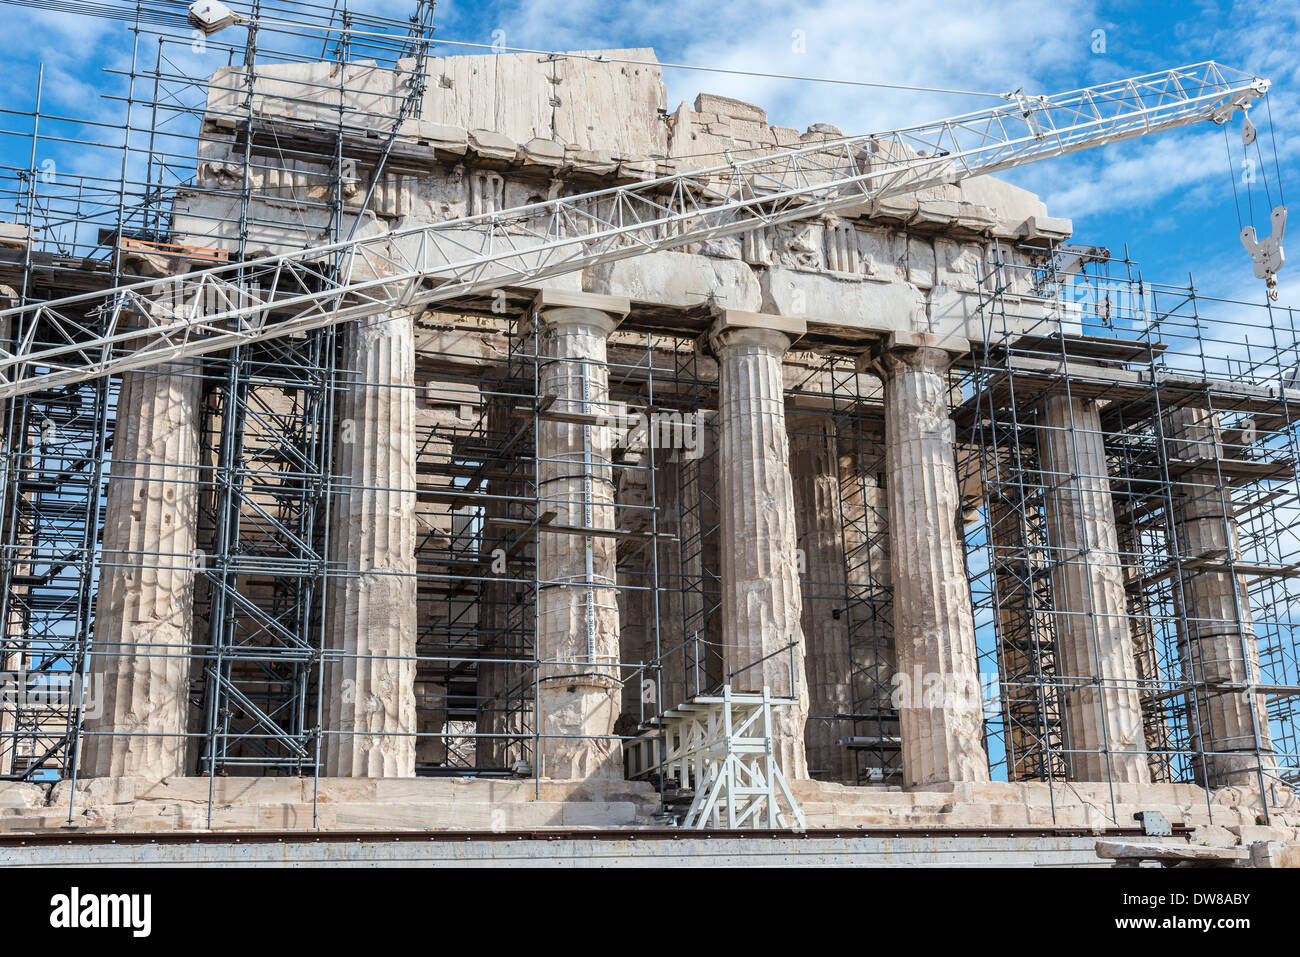 Scaffolding and crains obscure the facade of the Parthenon whilst undergoing major restoration, Athens, Greece. - Stock Image